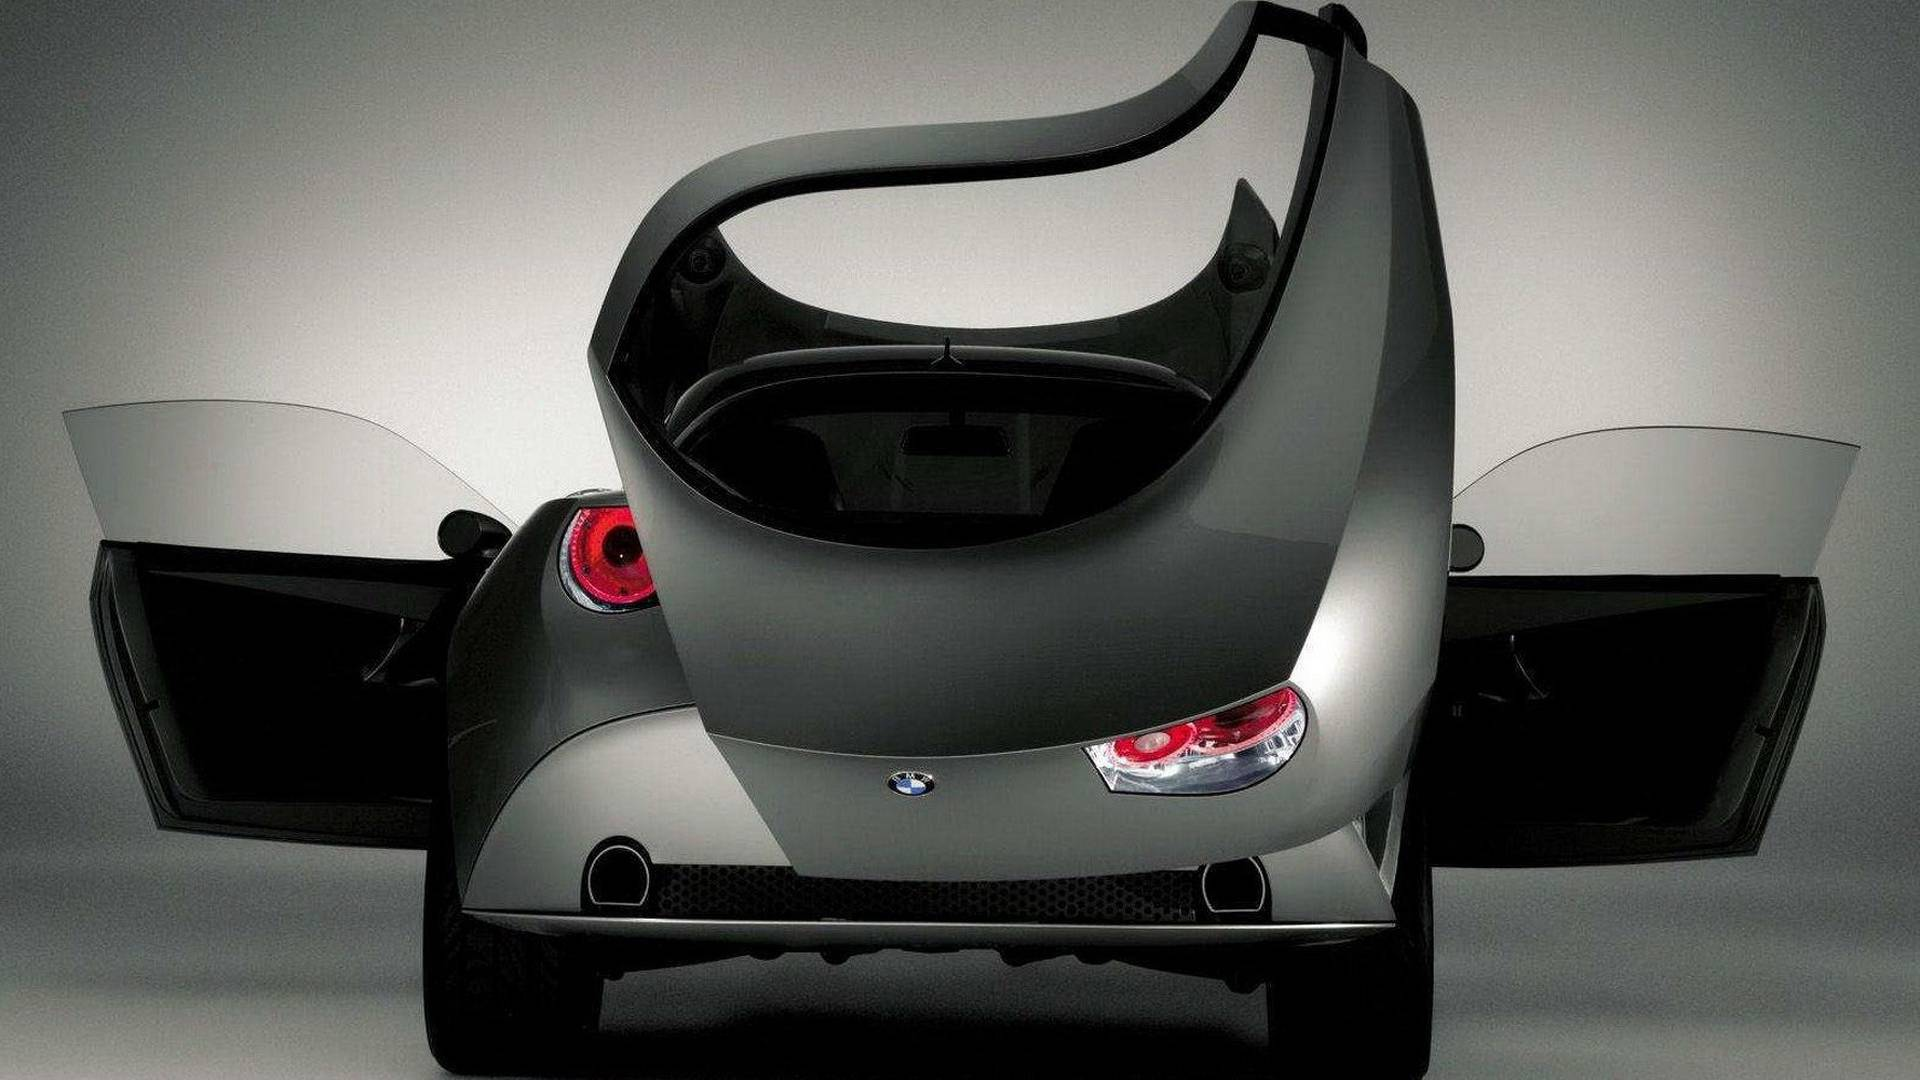 2001-bmw-x-coupe-concept10